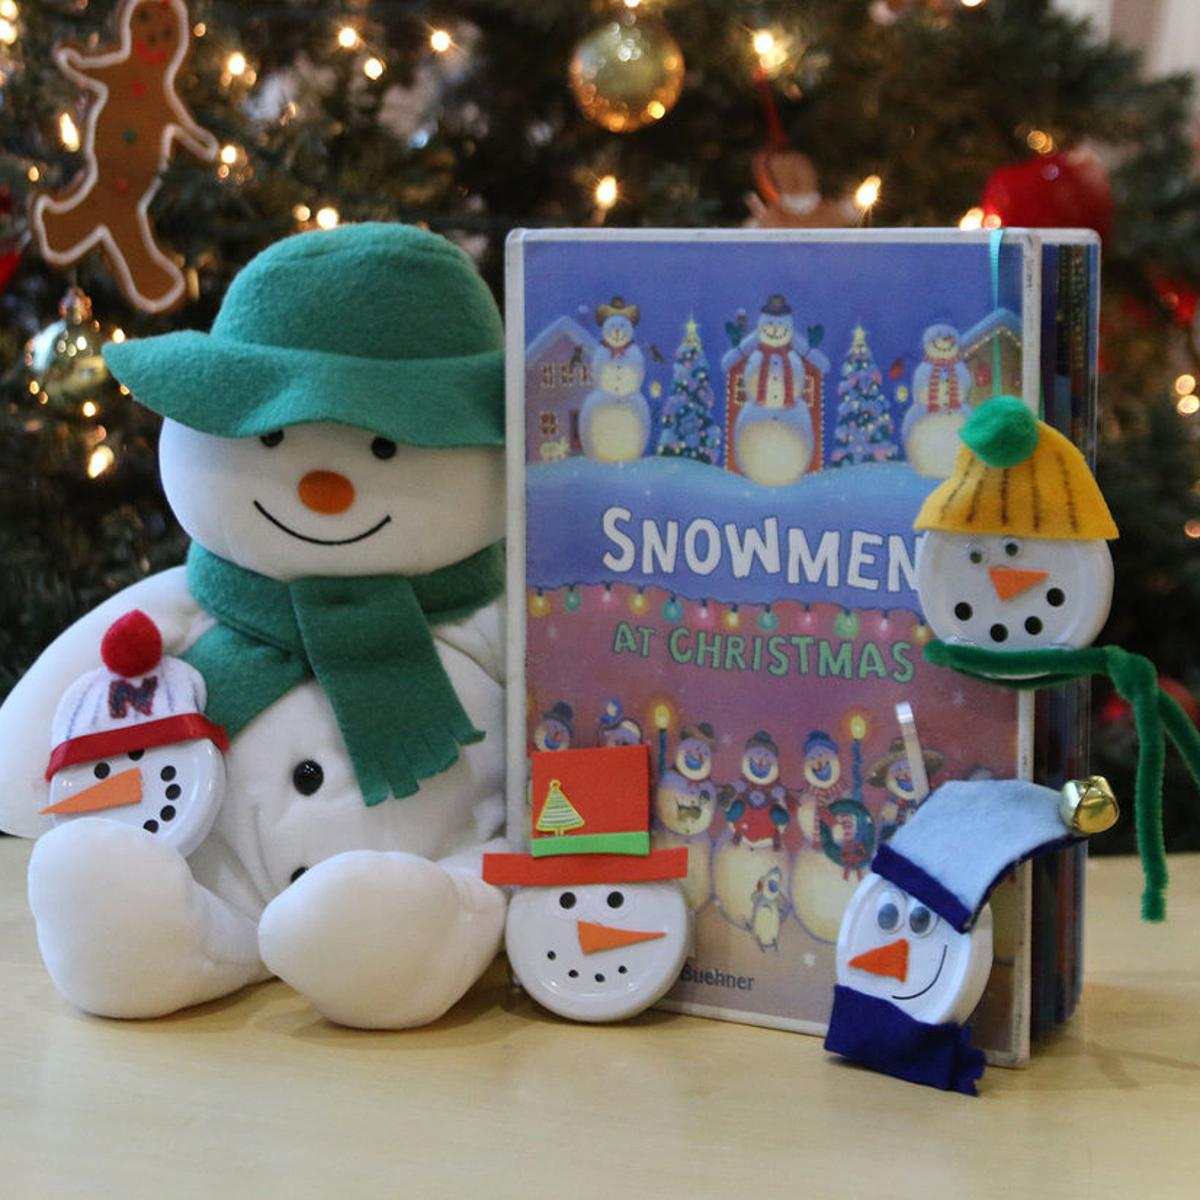 Snowmen At Christmas.Library Holiday Party Will Carry Snowmen Theme Local News